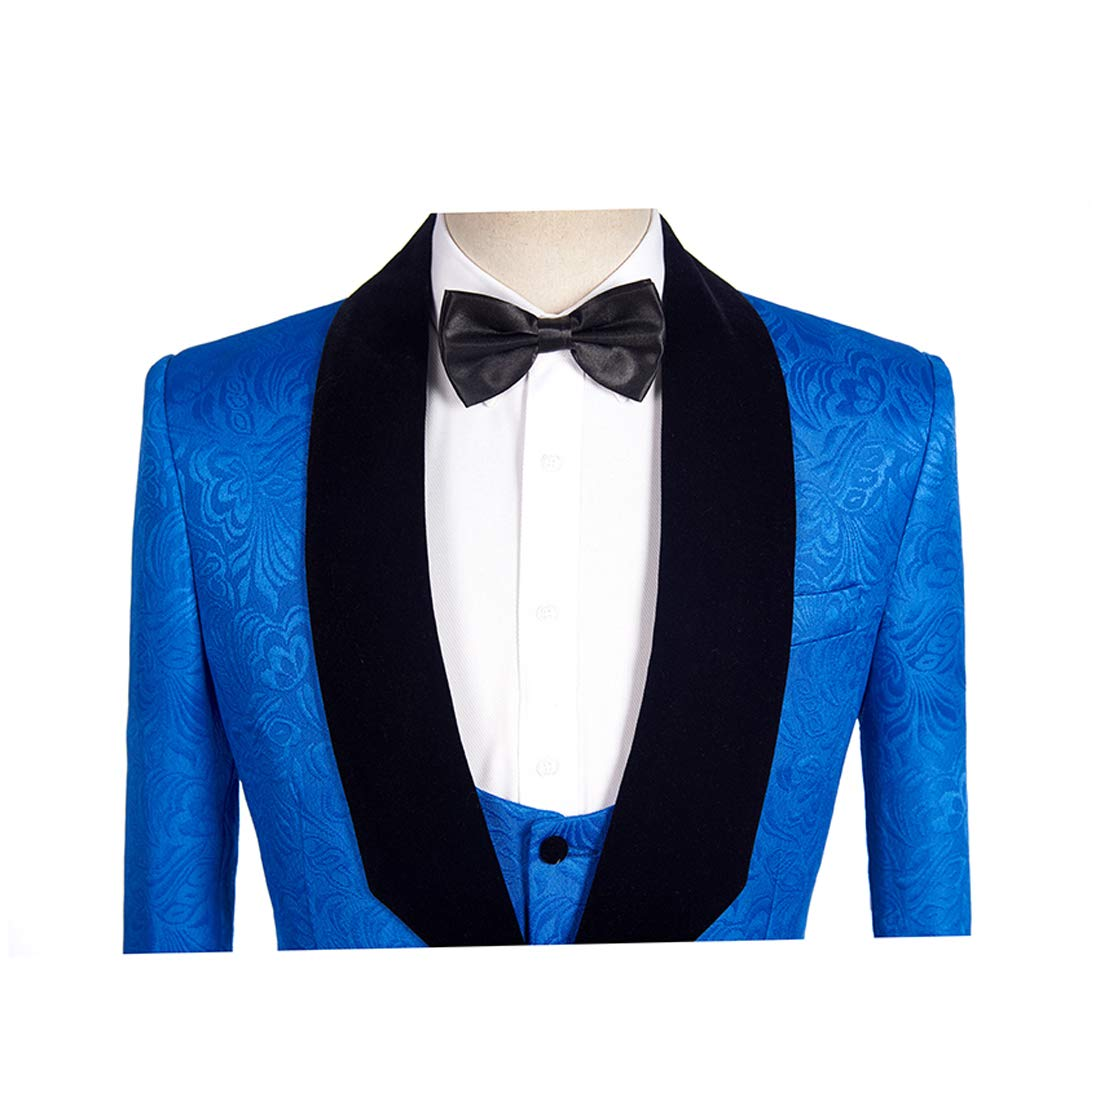 Printed Blazer for Mens Dress 1 Piece Stylish Luxury Coat Blue Man Suit Jacket for Man s Clothes AB061